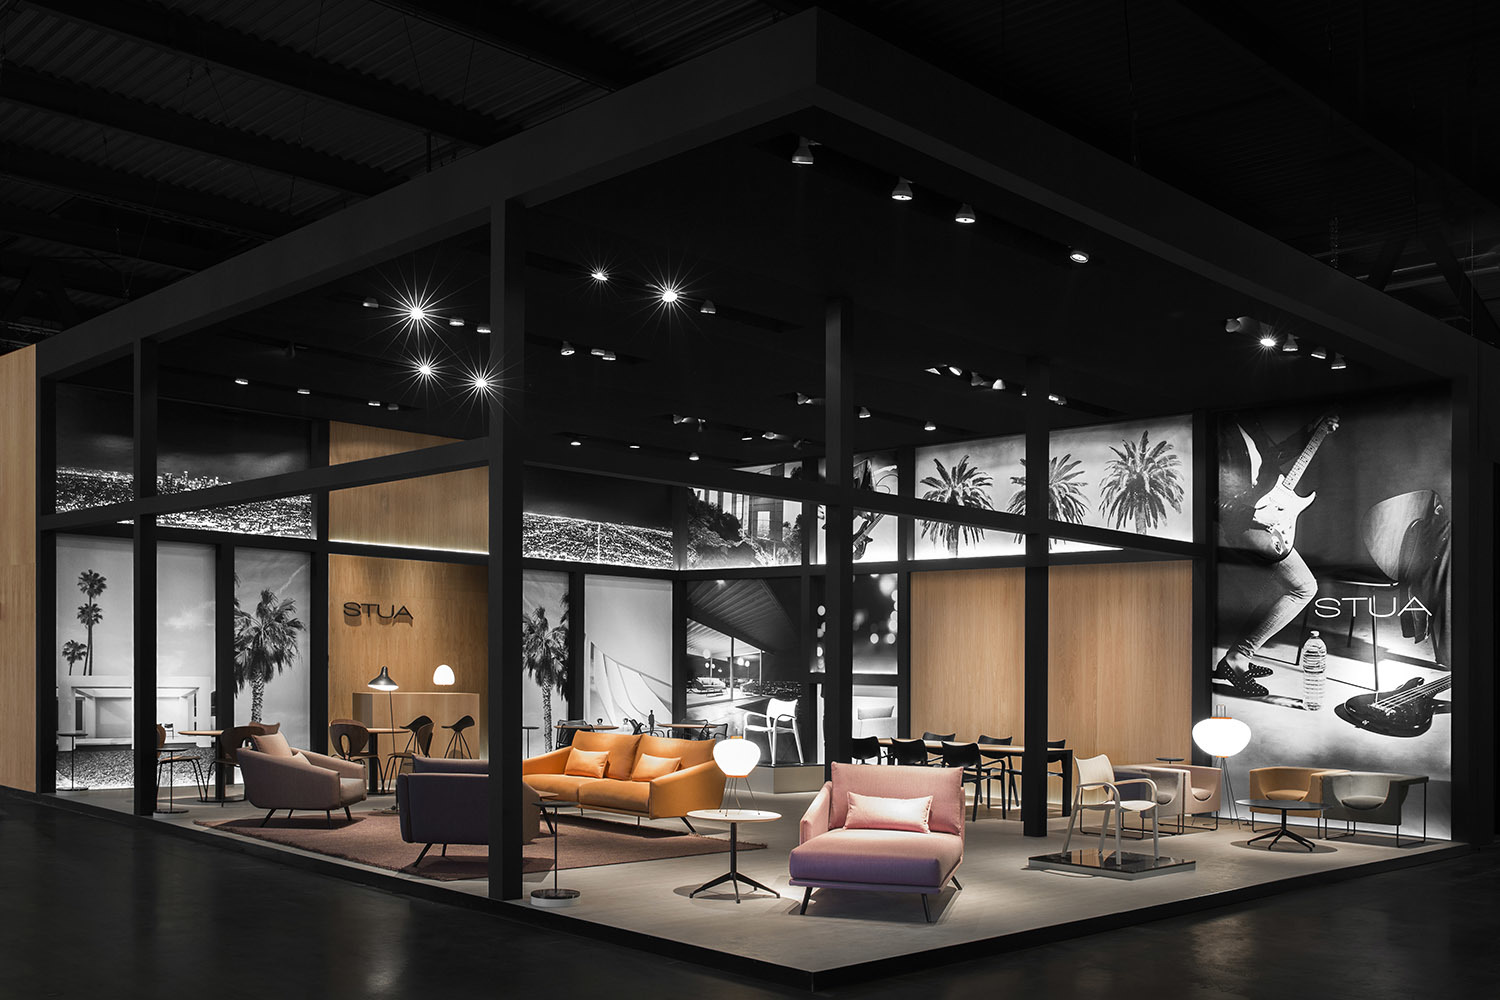 Salone del mobile 2018 show of creativity luxury and for Indirizzo salone del mobile milano